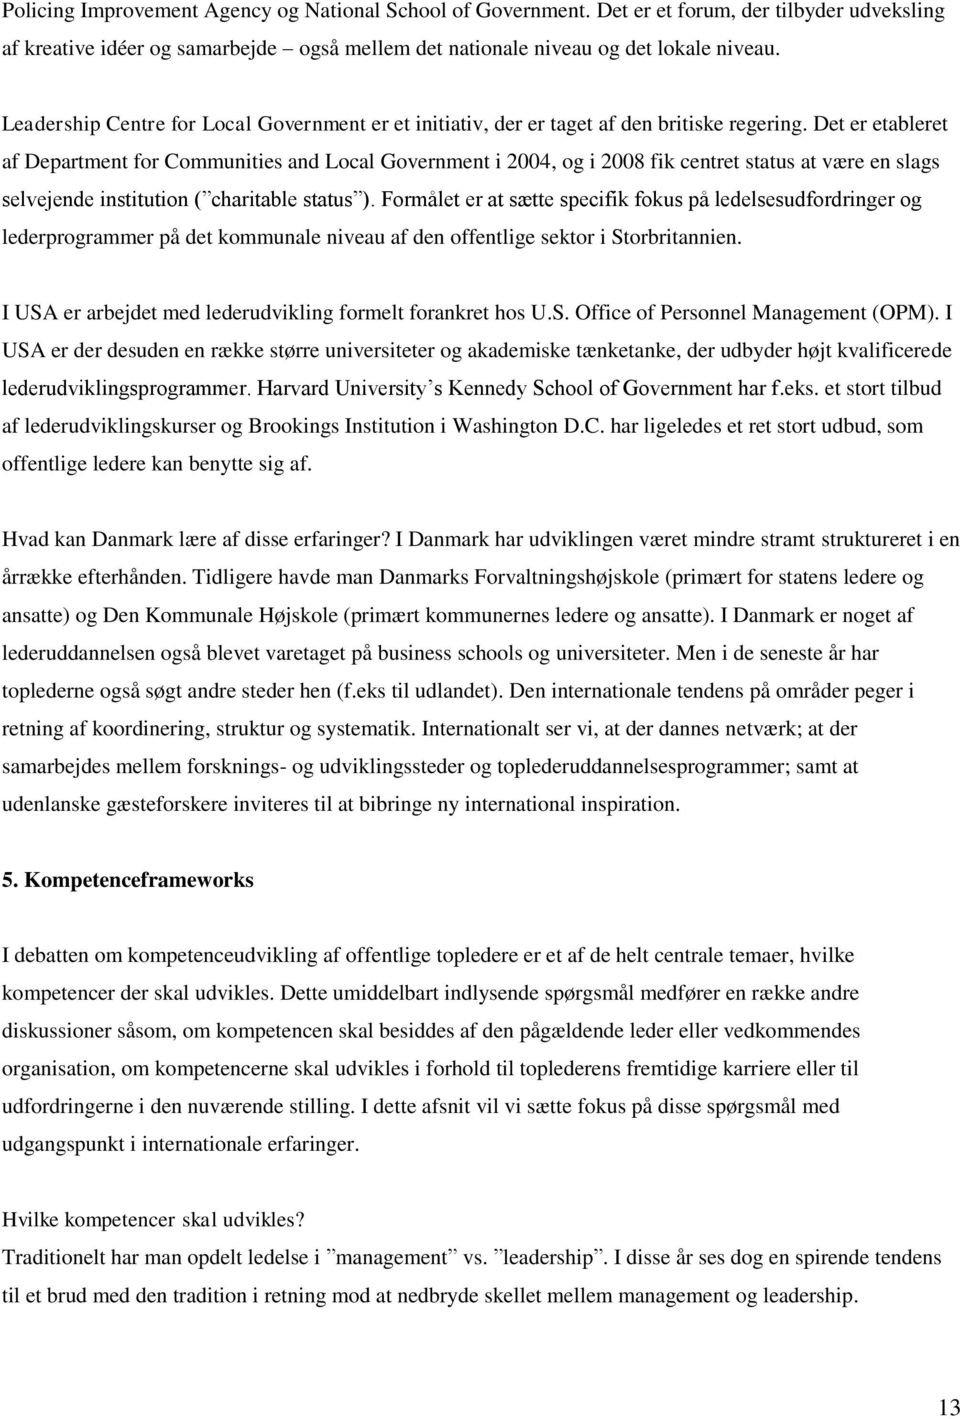 Det er etableret af Department for Communities and Local Government i 2004, og i 2008 fik centret status at være en slags selvejende institution ( charitable status ).